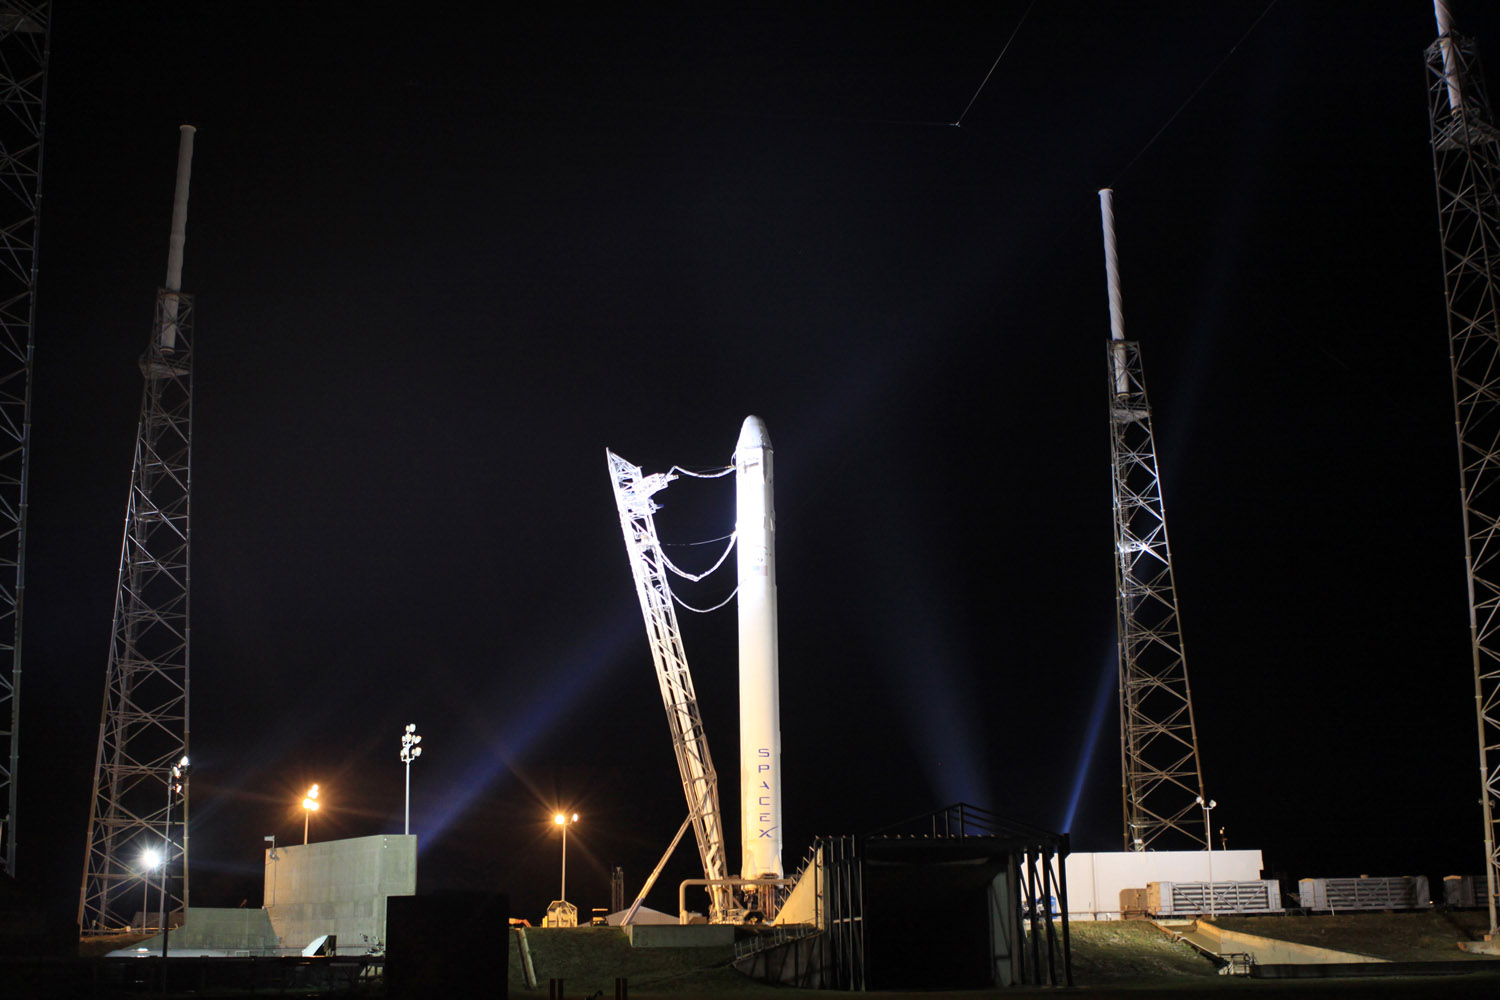 SpaceX Falcon 9 Rocket/Dragon Capsule at Night